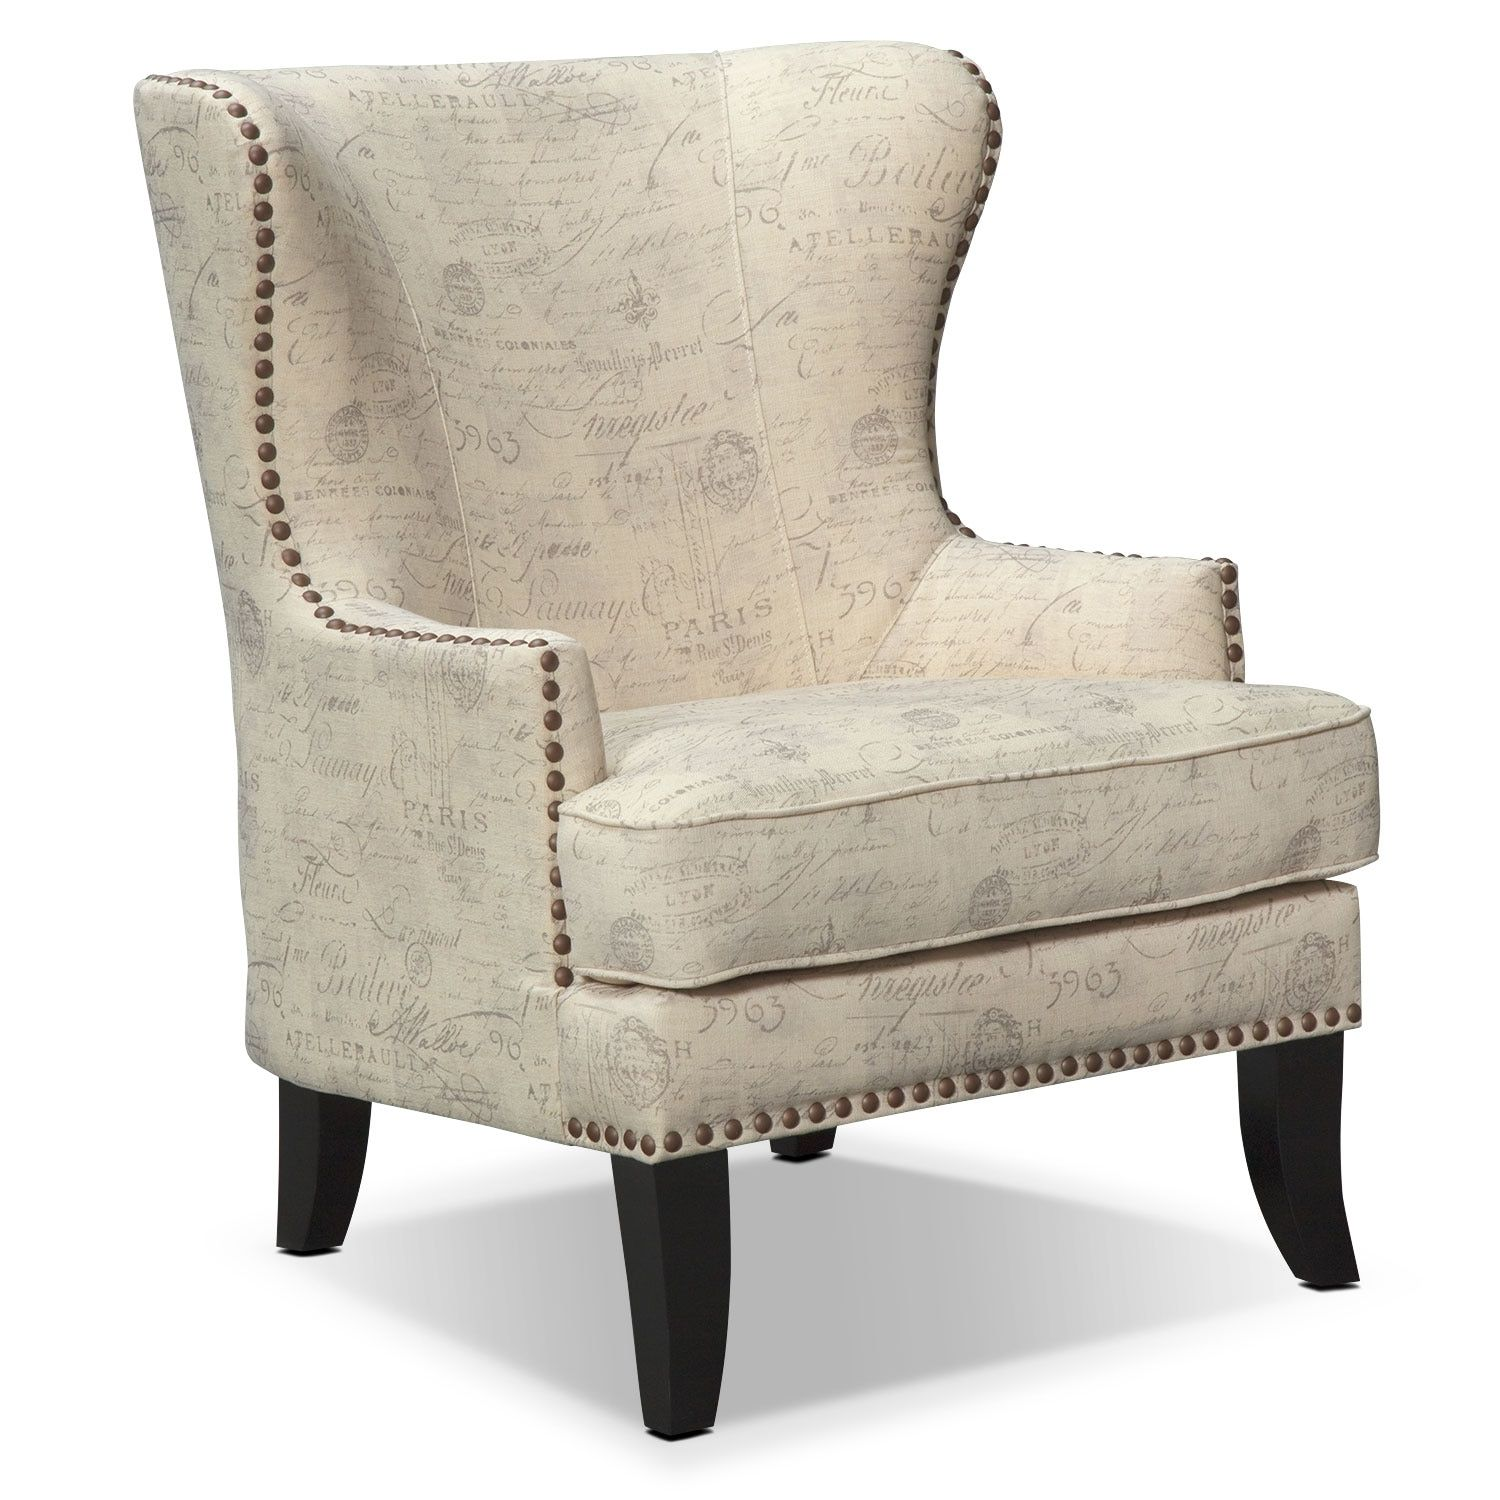 Travel Cool The Marseille Accent Chair Adds Vintage Travel